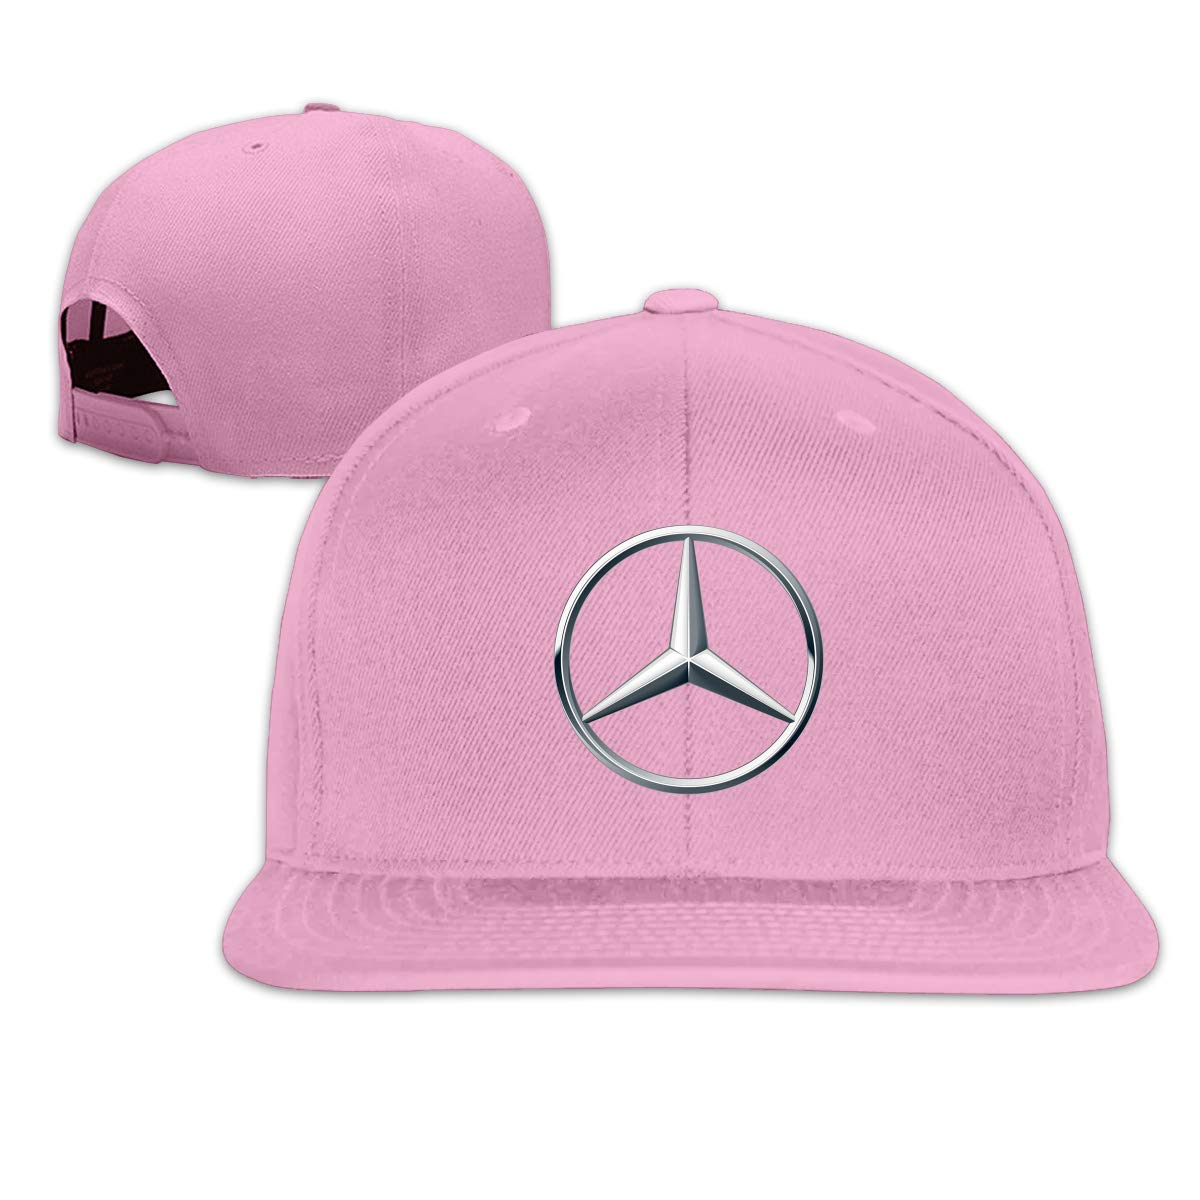 Custom Mercedes Benz Logo Cool Baseball Cap Hat for Men Women's,Pink